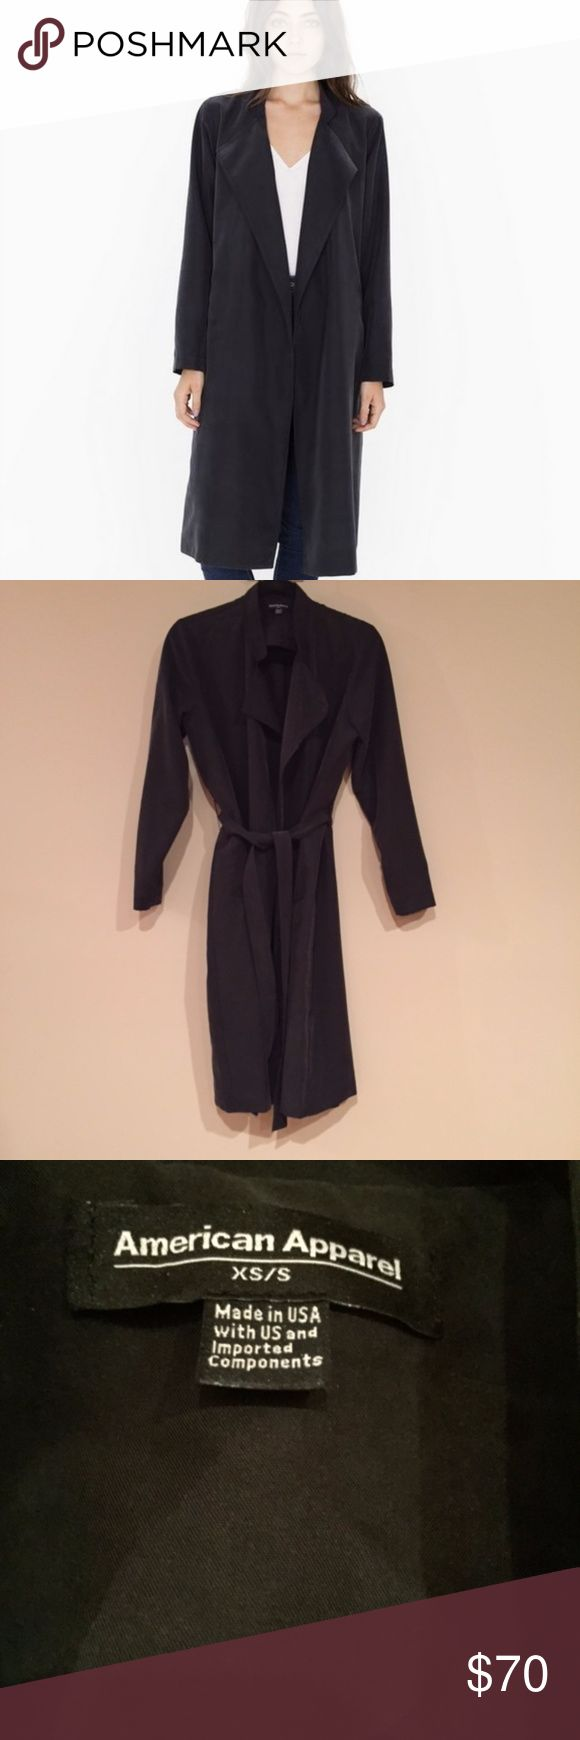 NWOT American Apparel Dylan Lightweight Trench Lightweight trench coat by American Apparel. Size XS/S, Charcoal color. New without tags, perfect condition. No longer available online! American Apparel Jackets & Coats Trench Coats